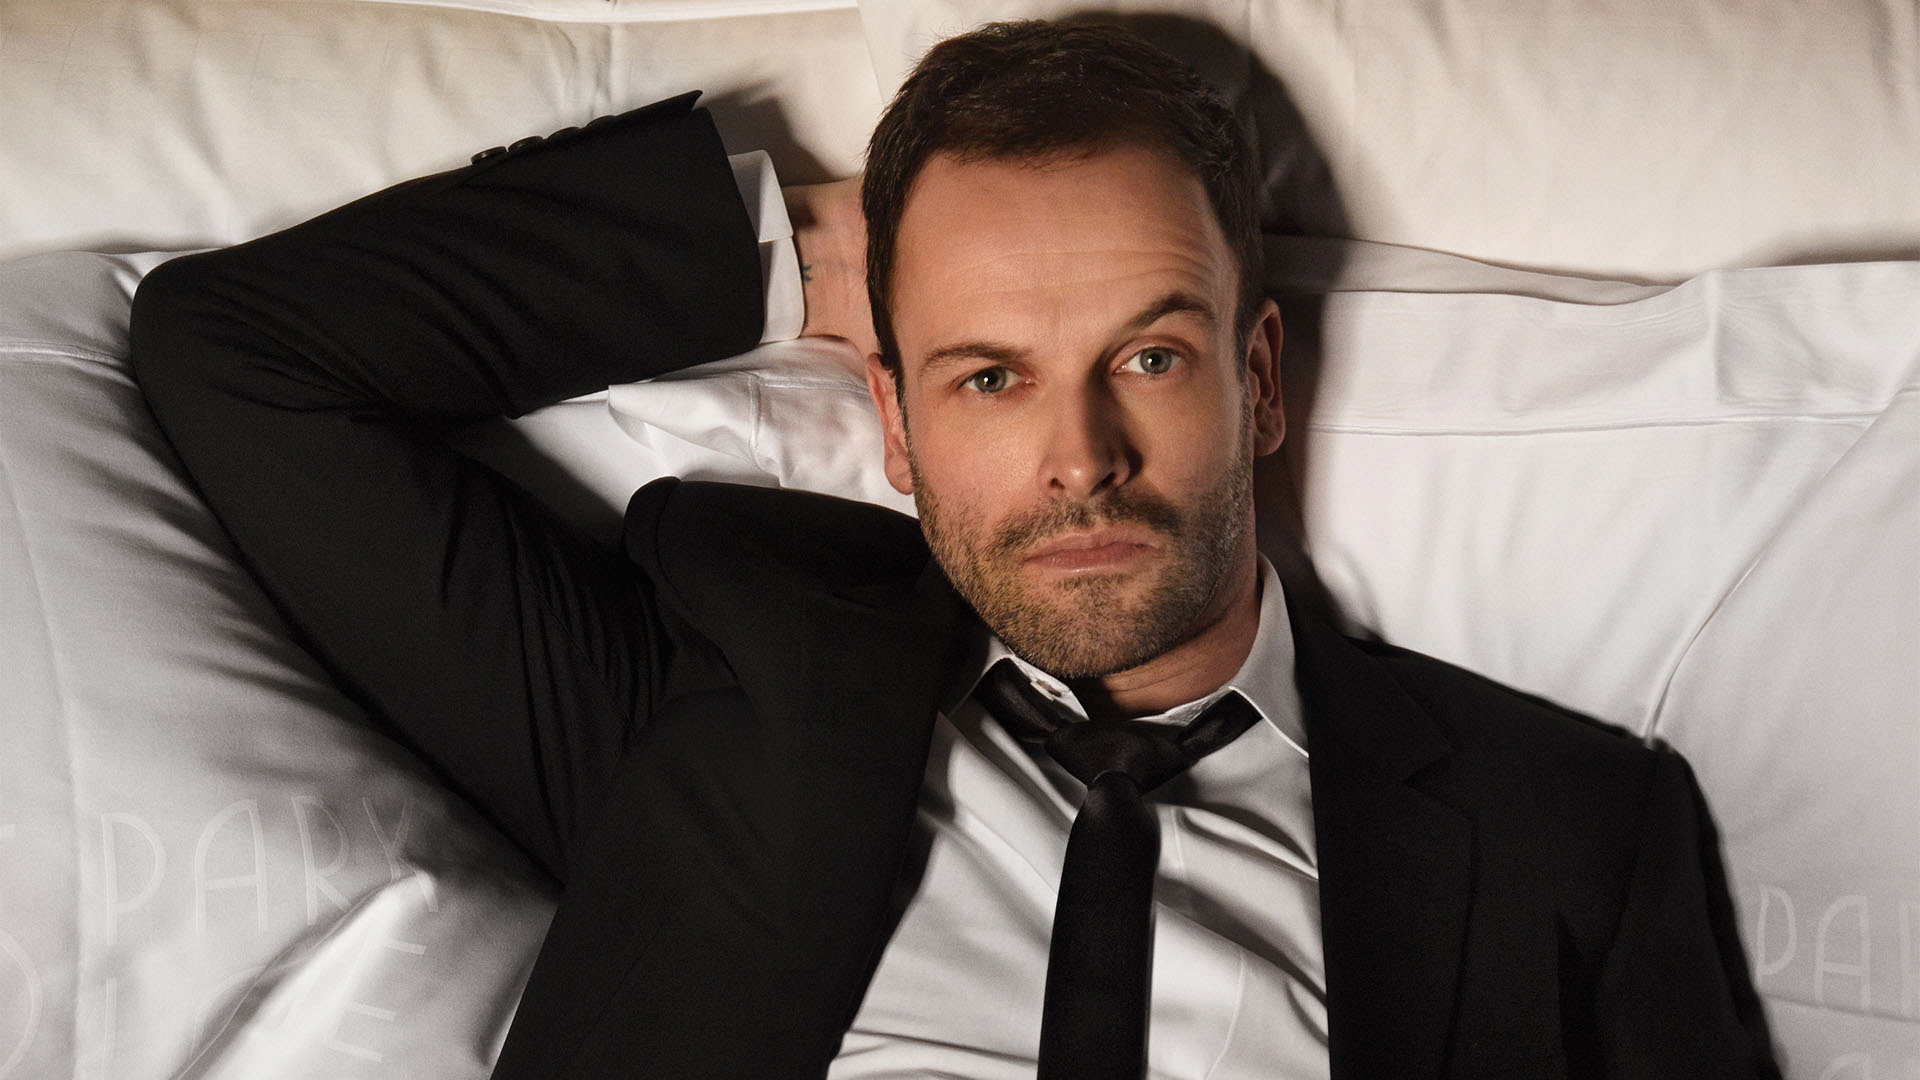 Jonny Lee Miller, especially when he gives us those smoldering eyes